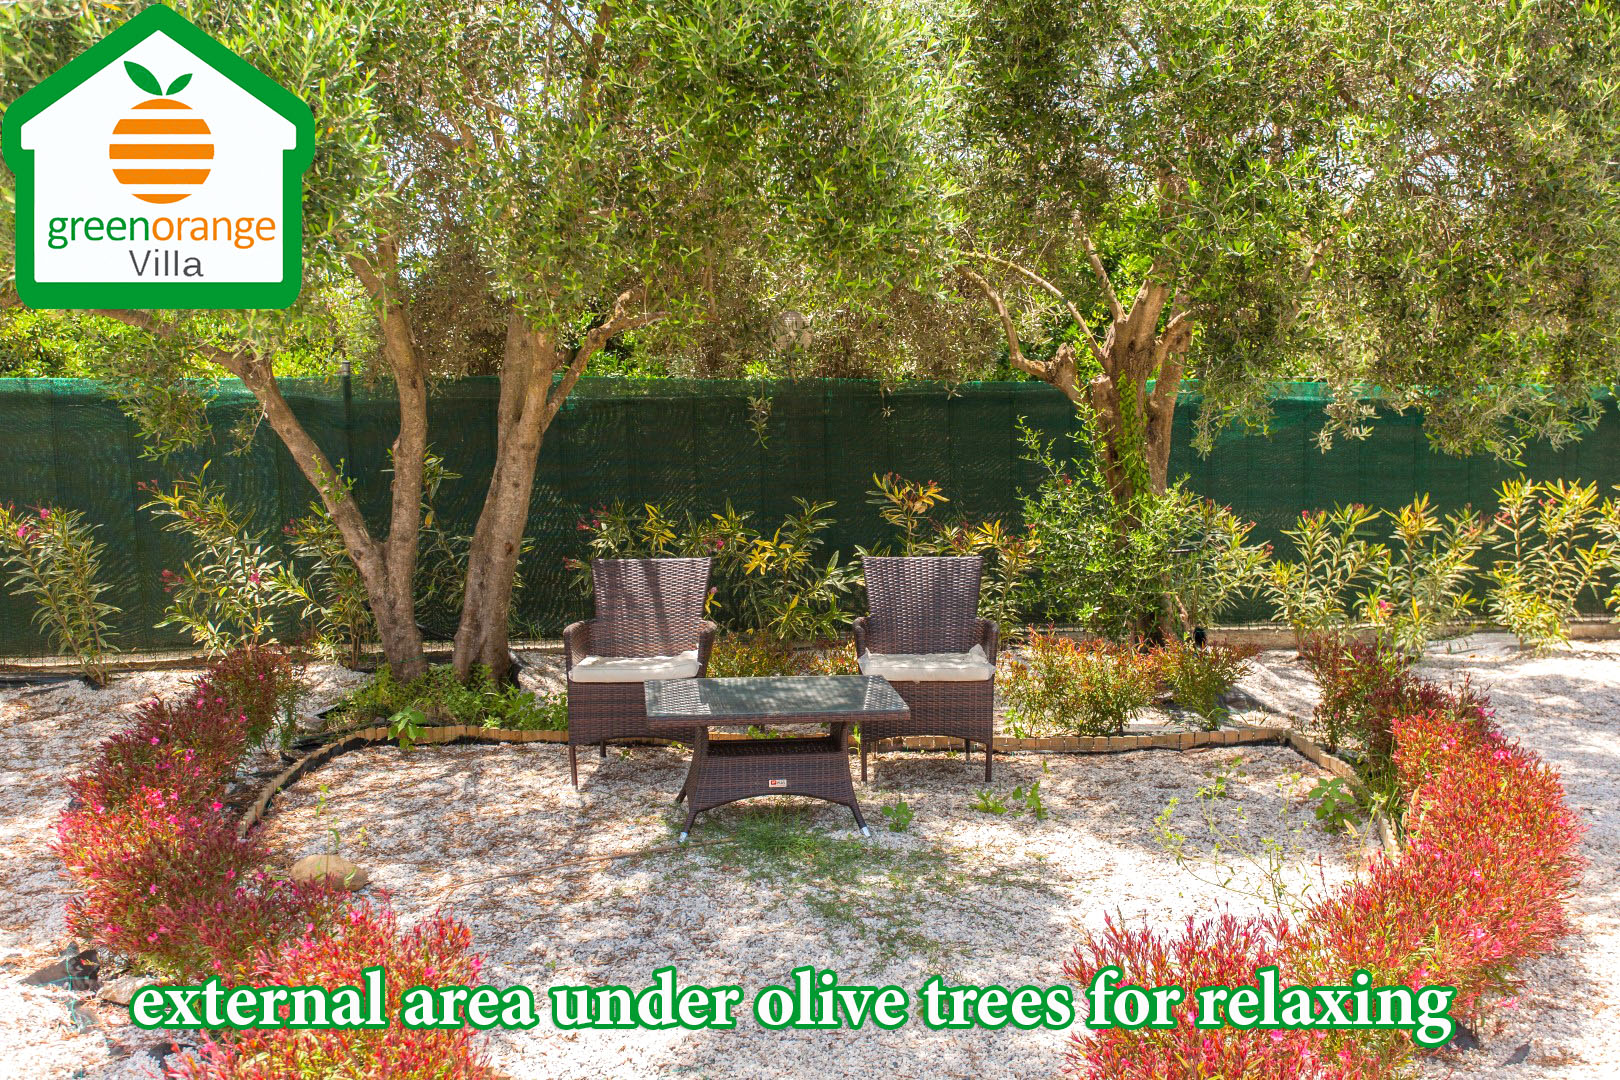 external-area-under-olive-tree-green-orange-villa